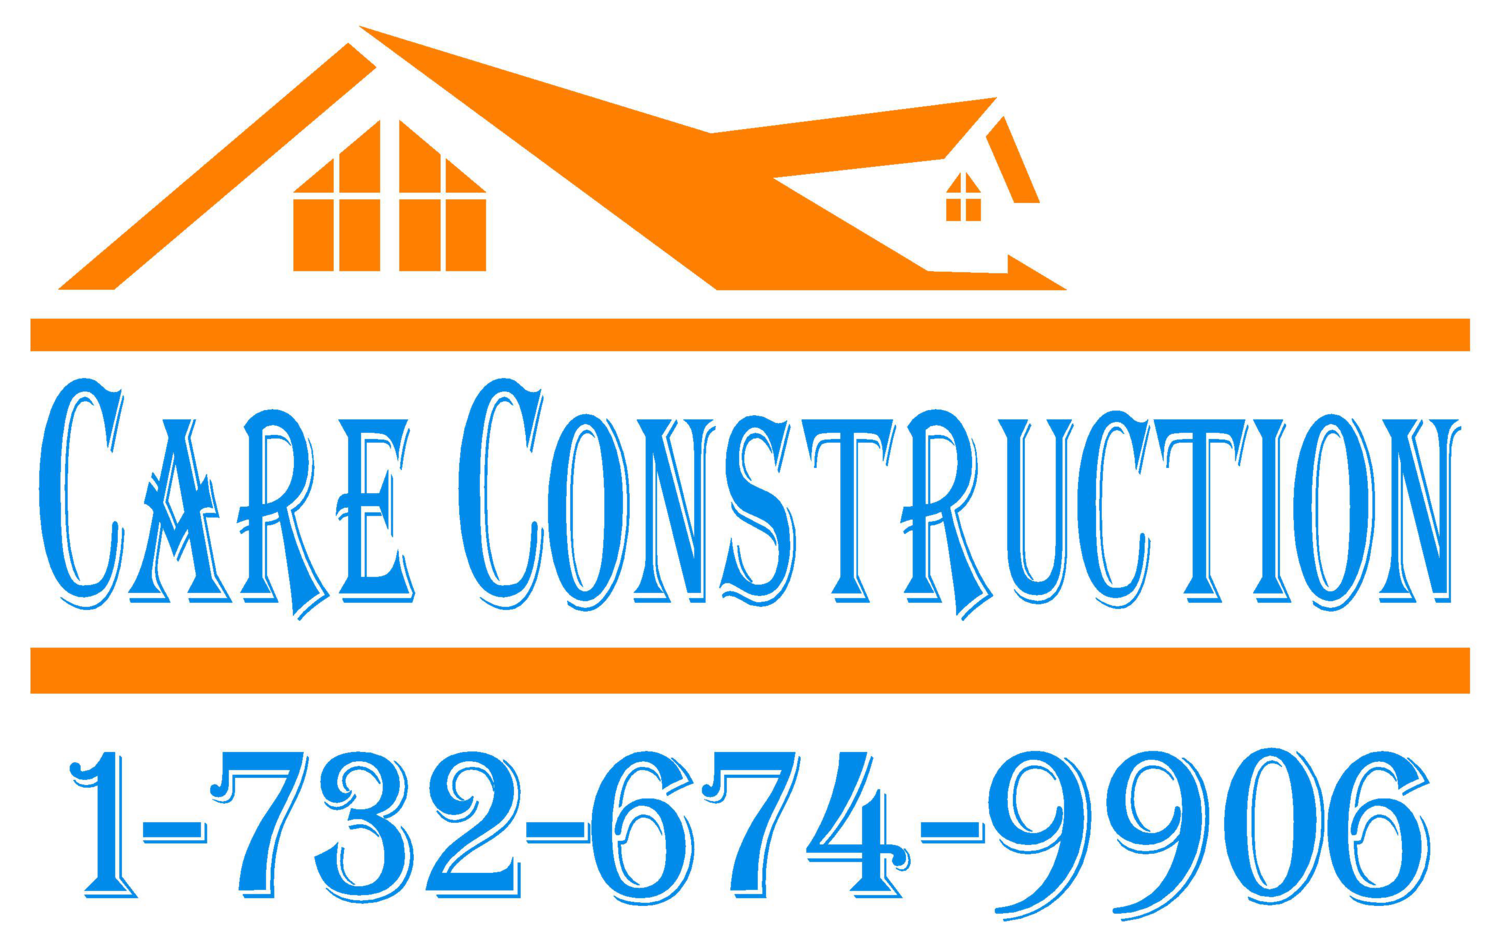 Care Construction